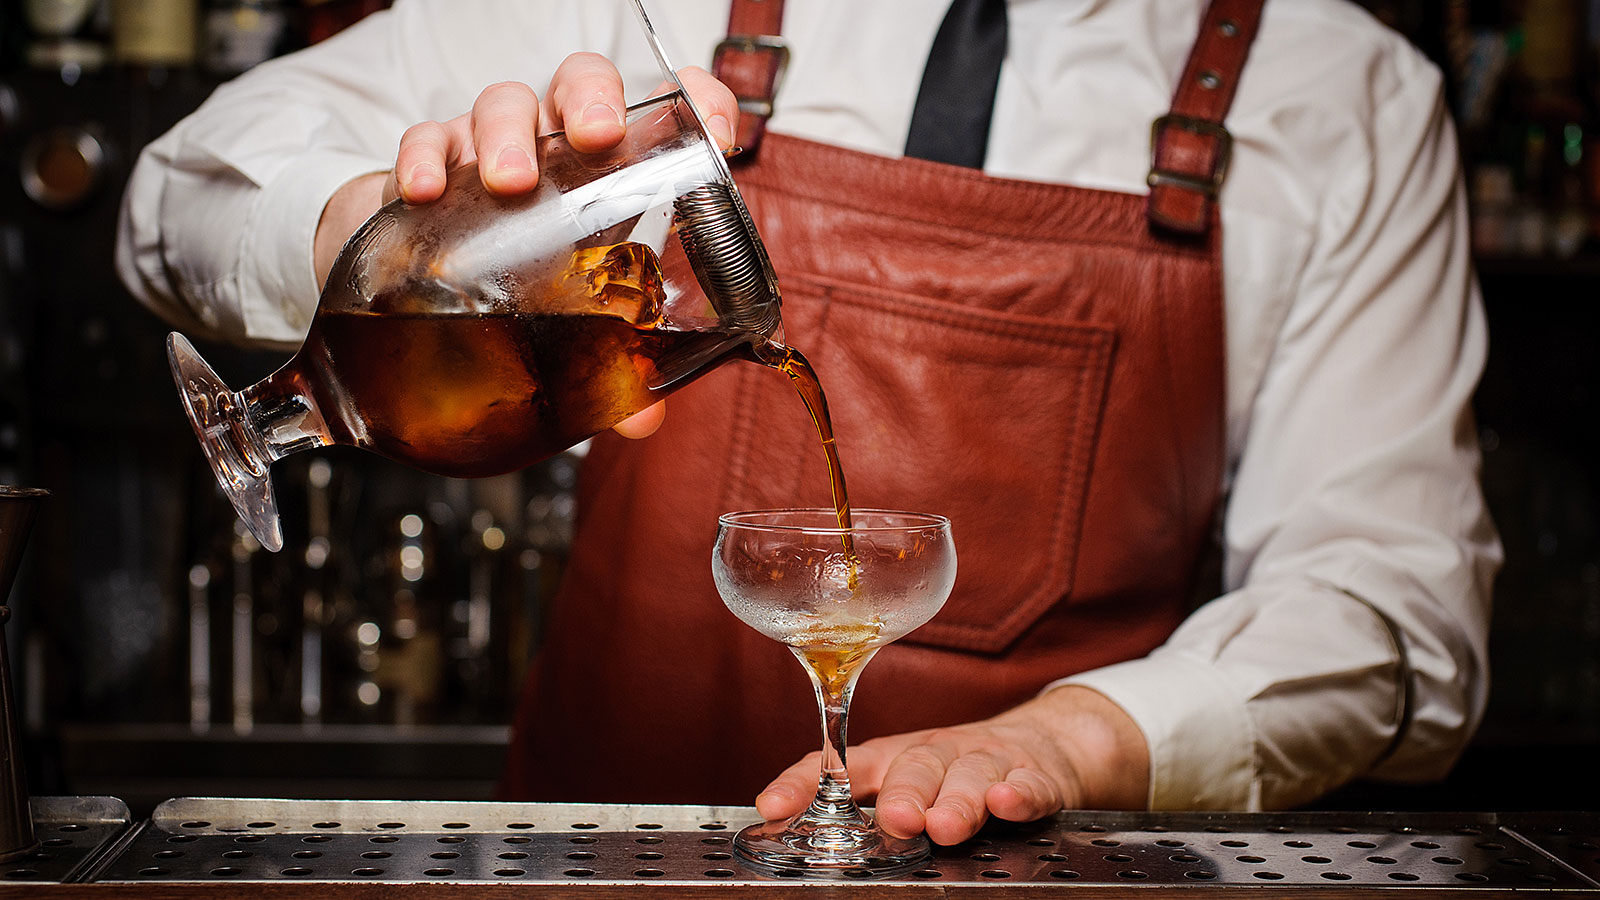 Subtle ways bartenders get customers to tip more, according to an actual bartender